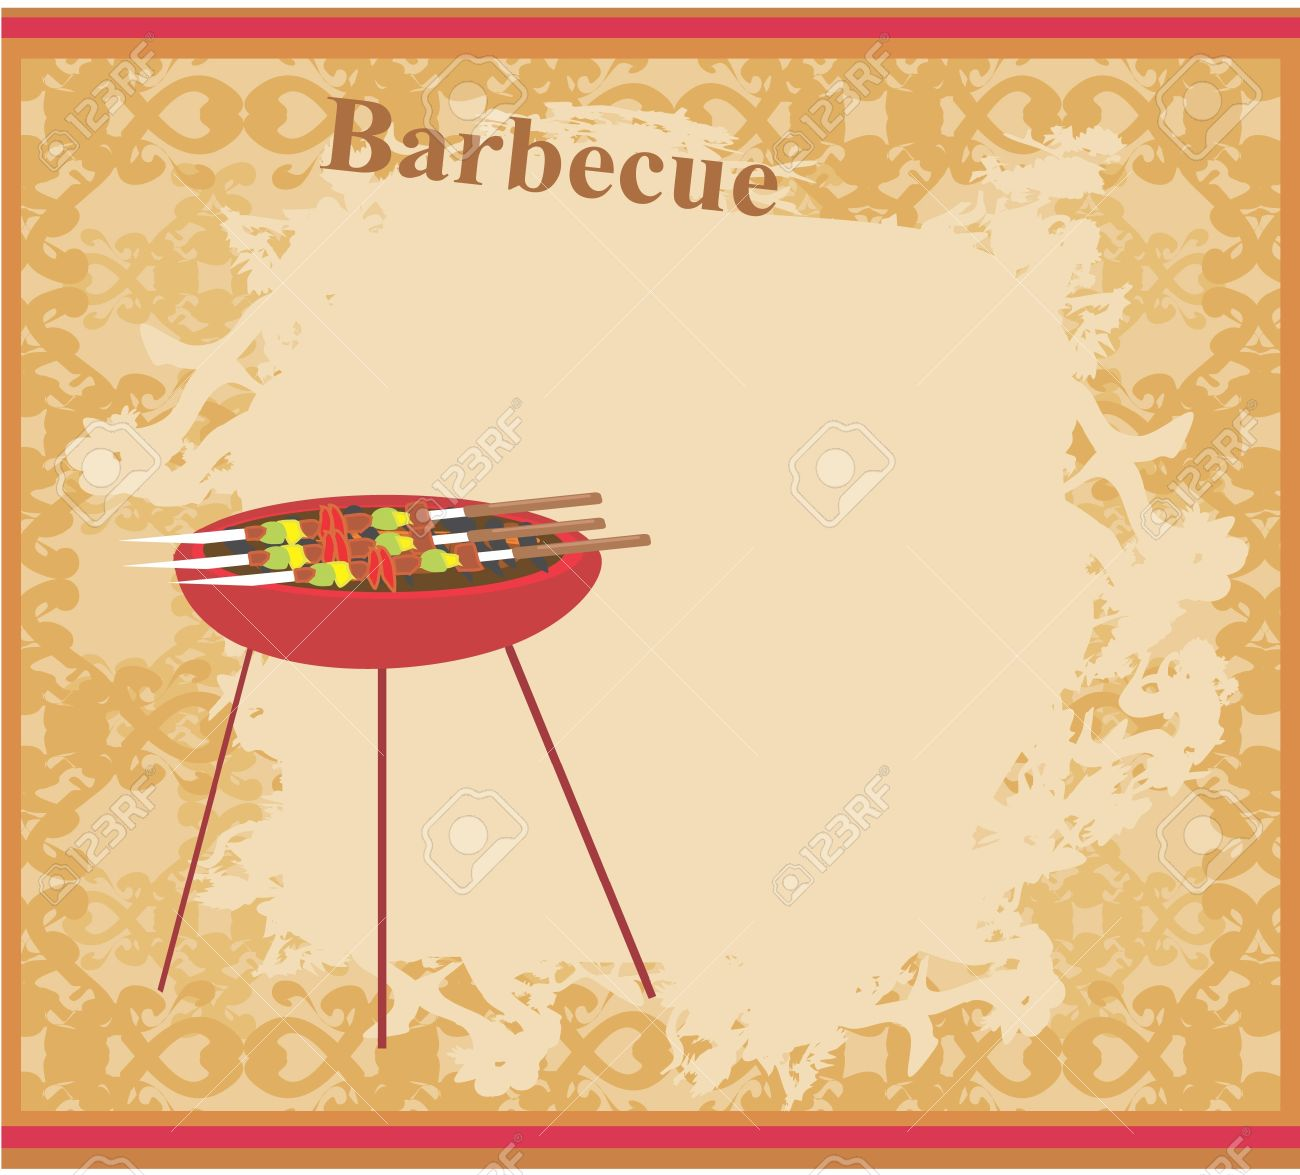 Cookout border clipart hot dog cookout invite stock vector art - Backyard Bbq Barbecue Party Invitation Illustration